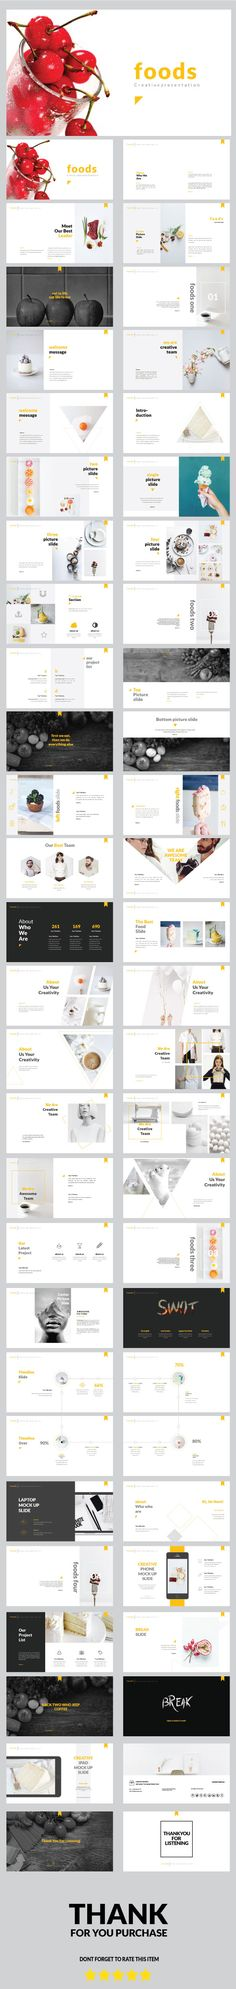 Foods - Creative Multipurpose Powerpoint Template